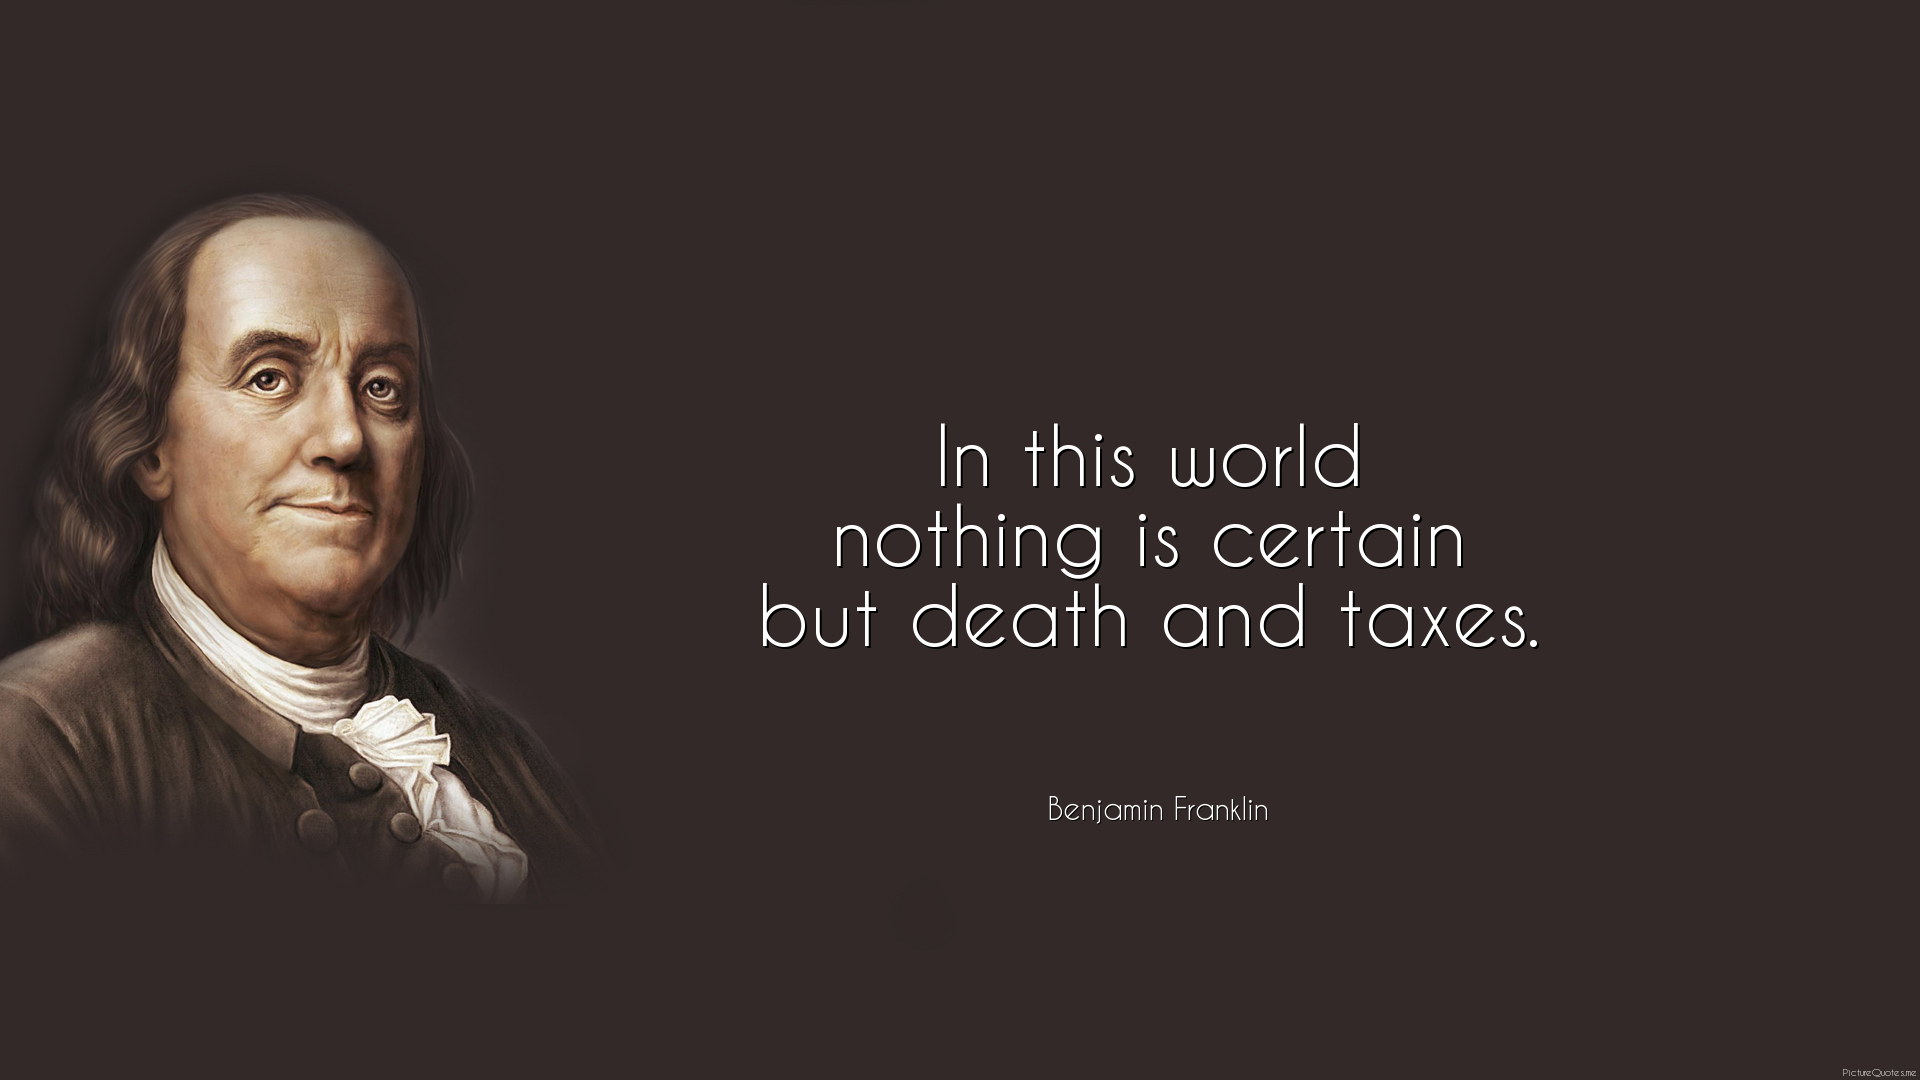 Make Own Quote Wallpaper In This World Nothing Is Certain But Death And Taxes